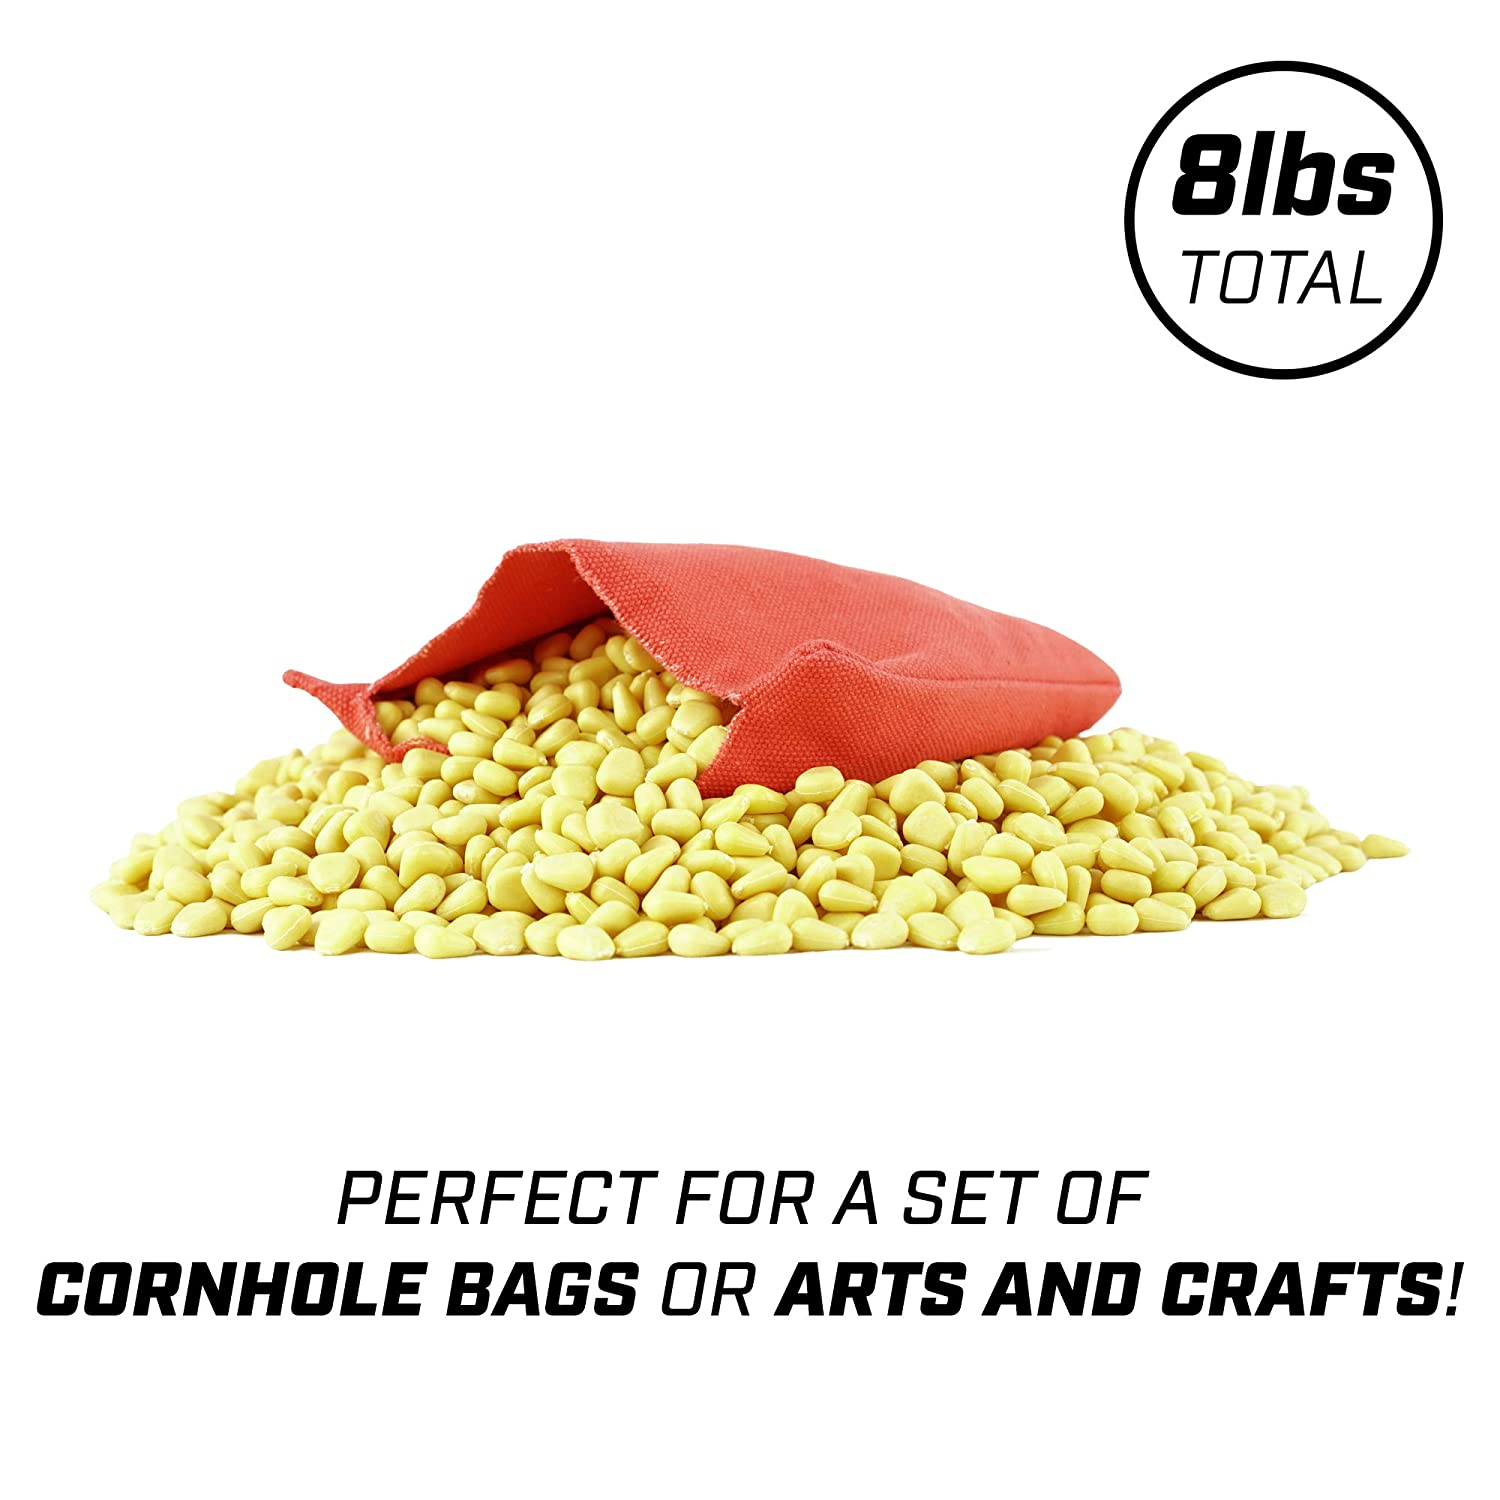 GoSports Plastic Corn Pellets 8 Lb Bulk All-Weather Filler Arts and Crafts and More Great for Cornhole Bean Bags